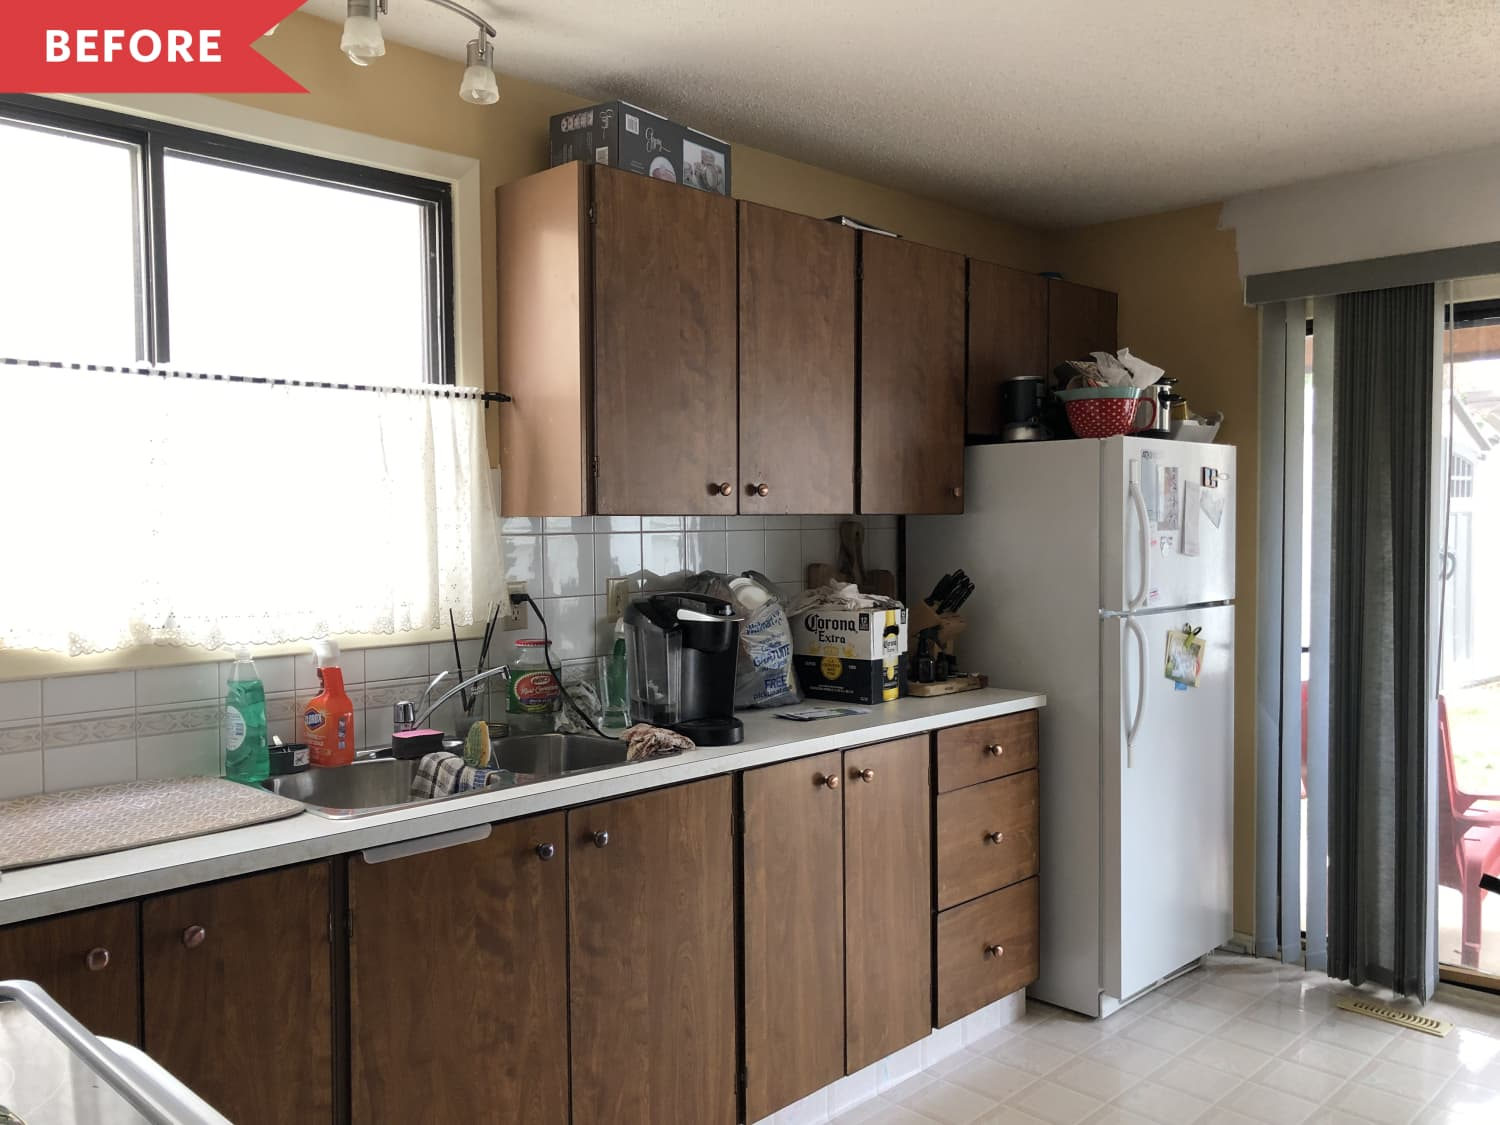 Before & After: Budget DIY Upgrades Totally Transformed This Kitchen and Its Dark Wood Cabinets